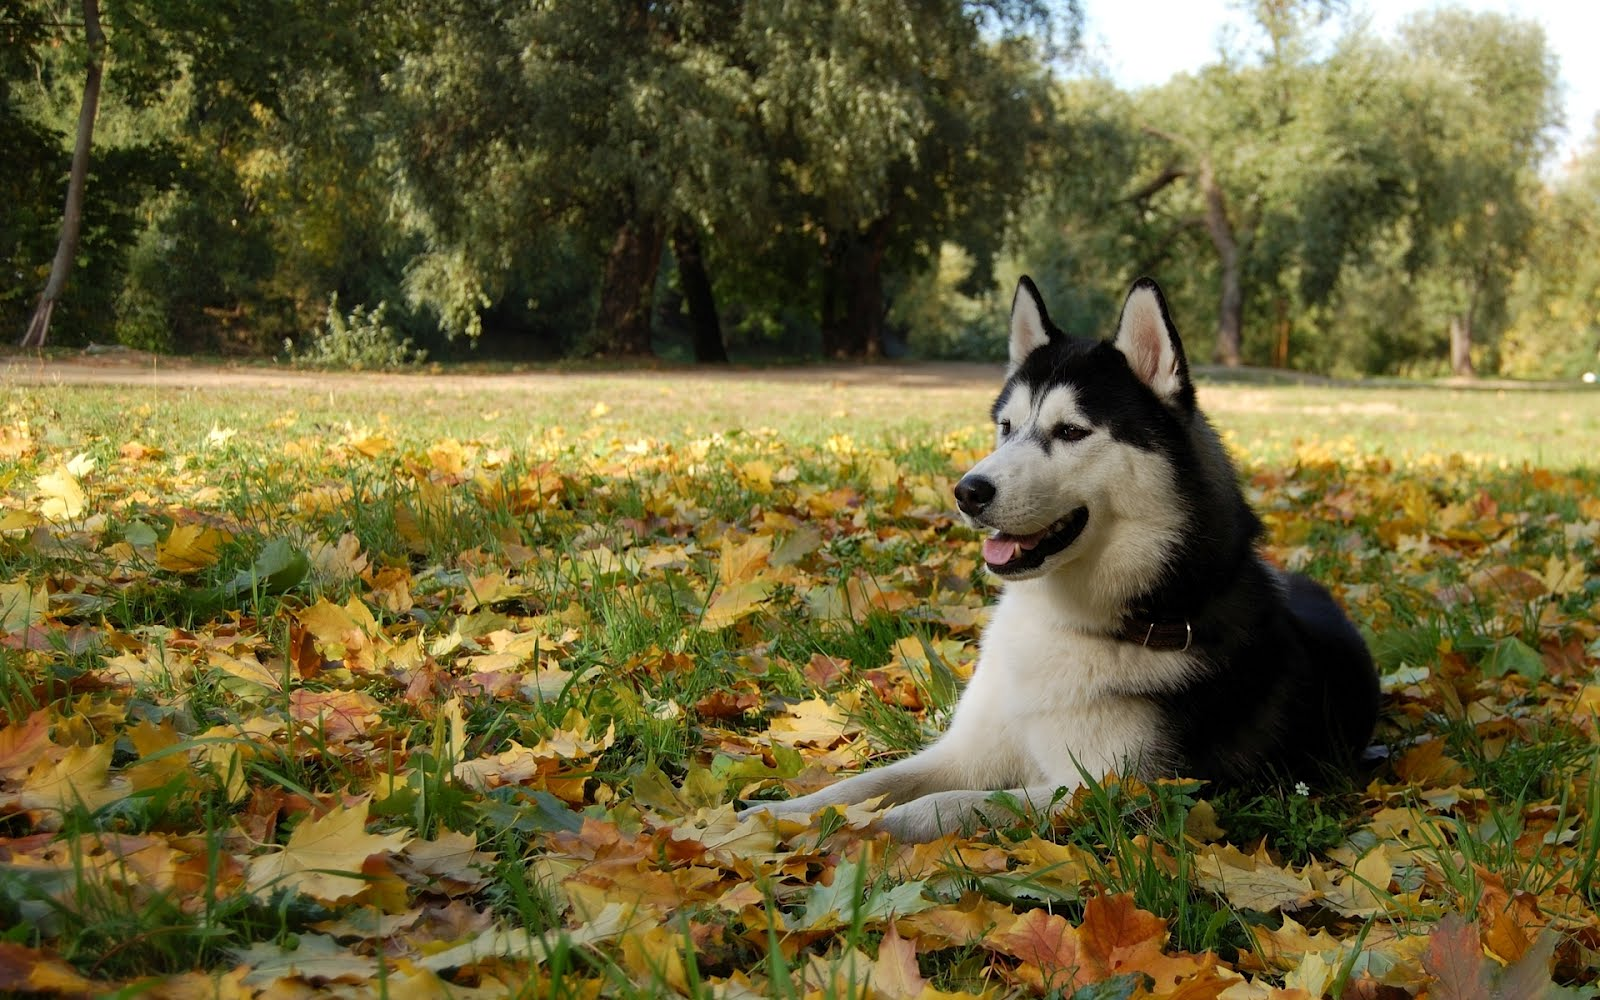 http://1.bp.blogspot.com/-f8-nvAdCaeI/UEkAvJ8dCjI/AAAAAAAAAOs/GoZQ8kr39qg/s1600/wallpaepers-dog-dog-Husky-Malamute-the-leaves.jpg